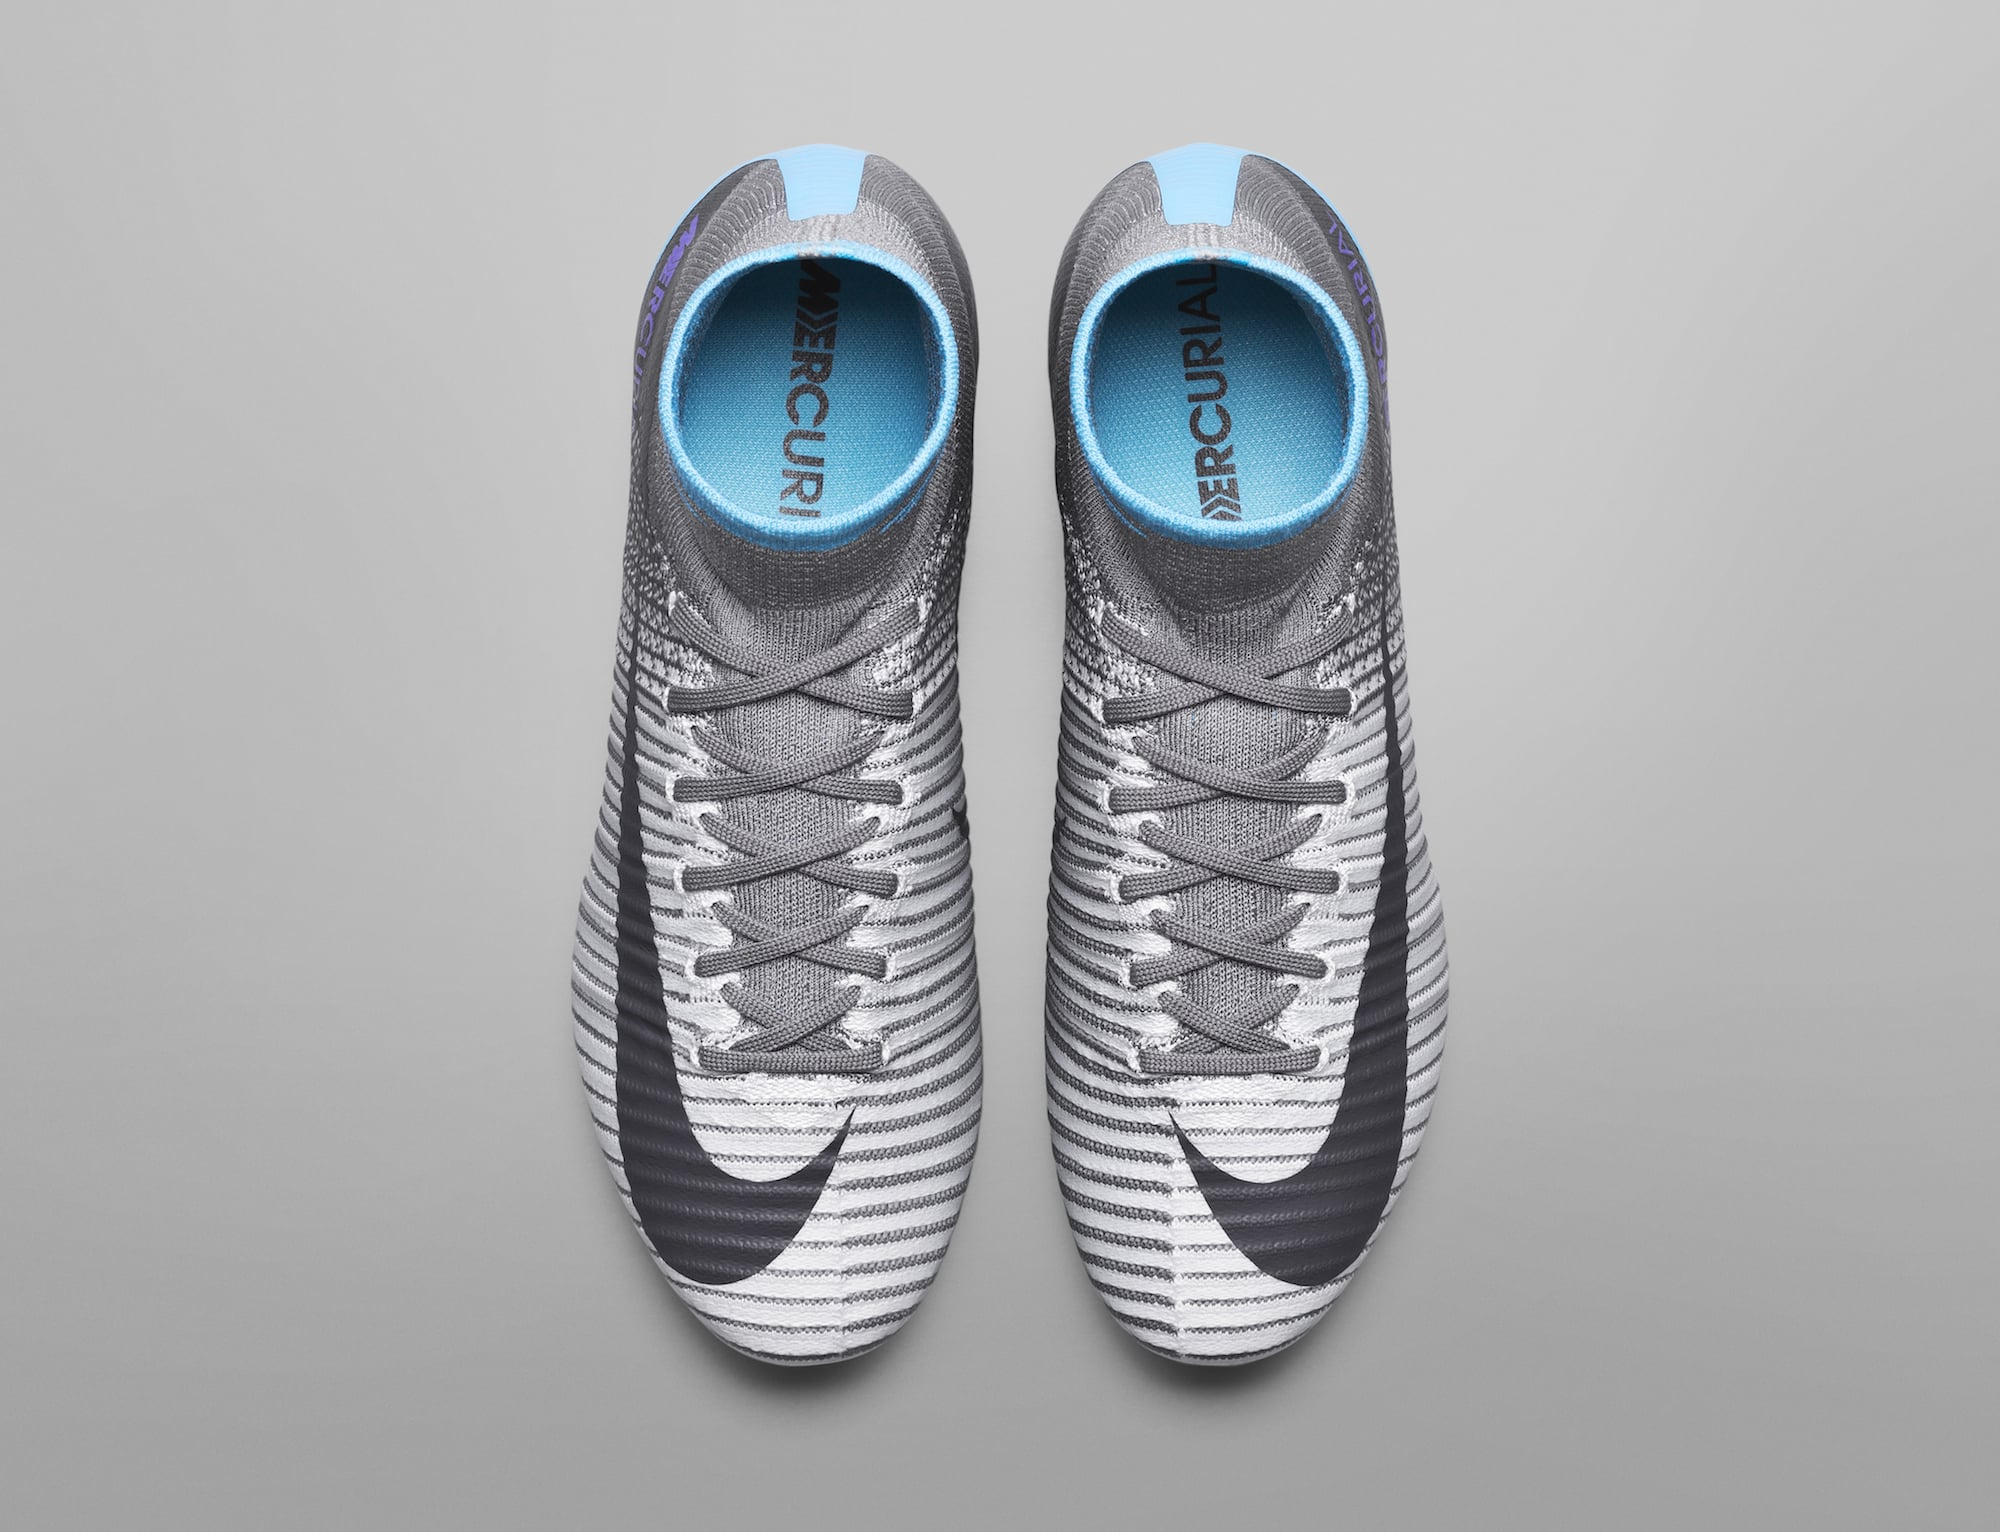 chaussures-football-Nike-Mercurial-Superfly-V-Femmes-Women-Radiation-Flare-img3